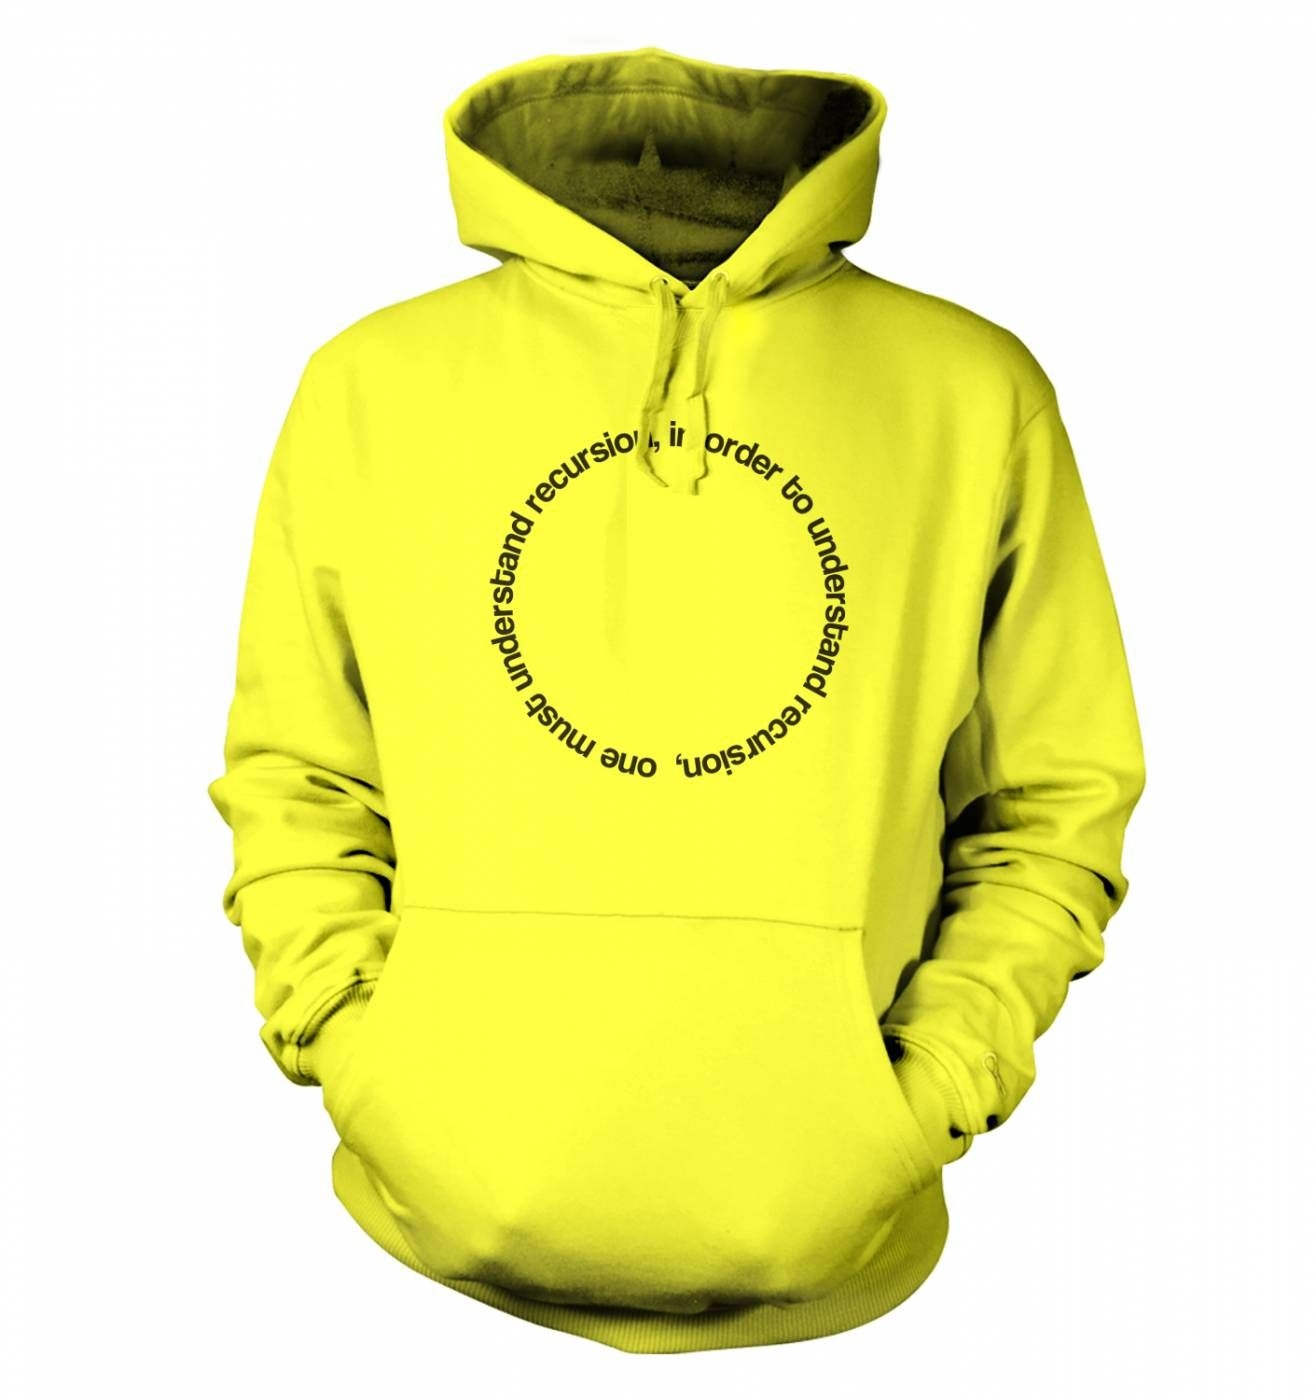 In Order To Understand Recursion hoodie